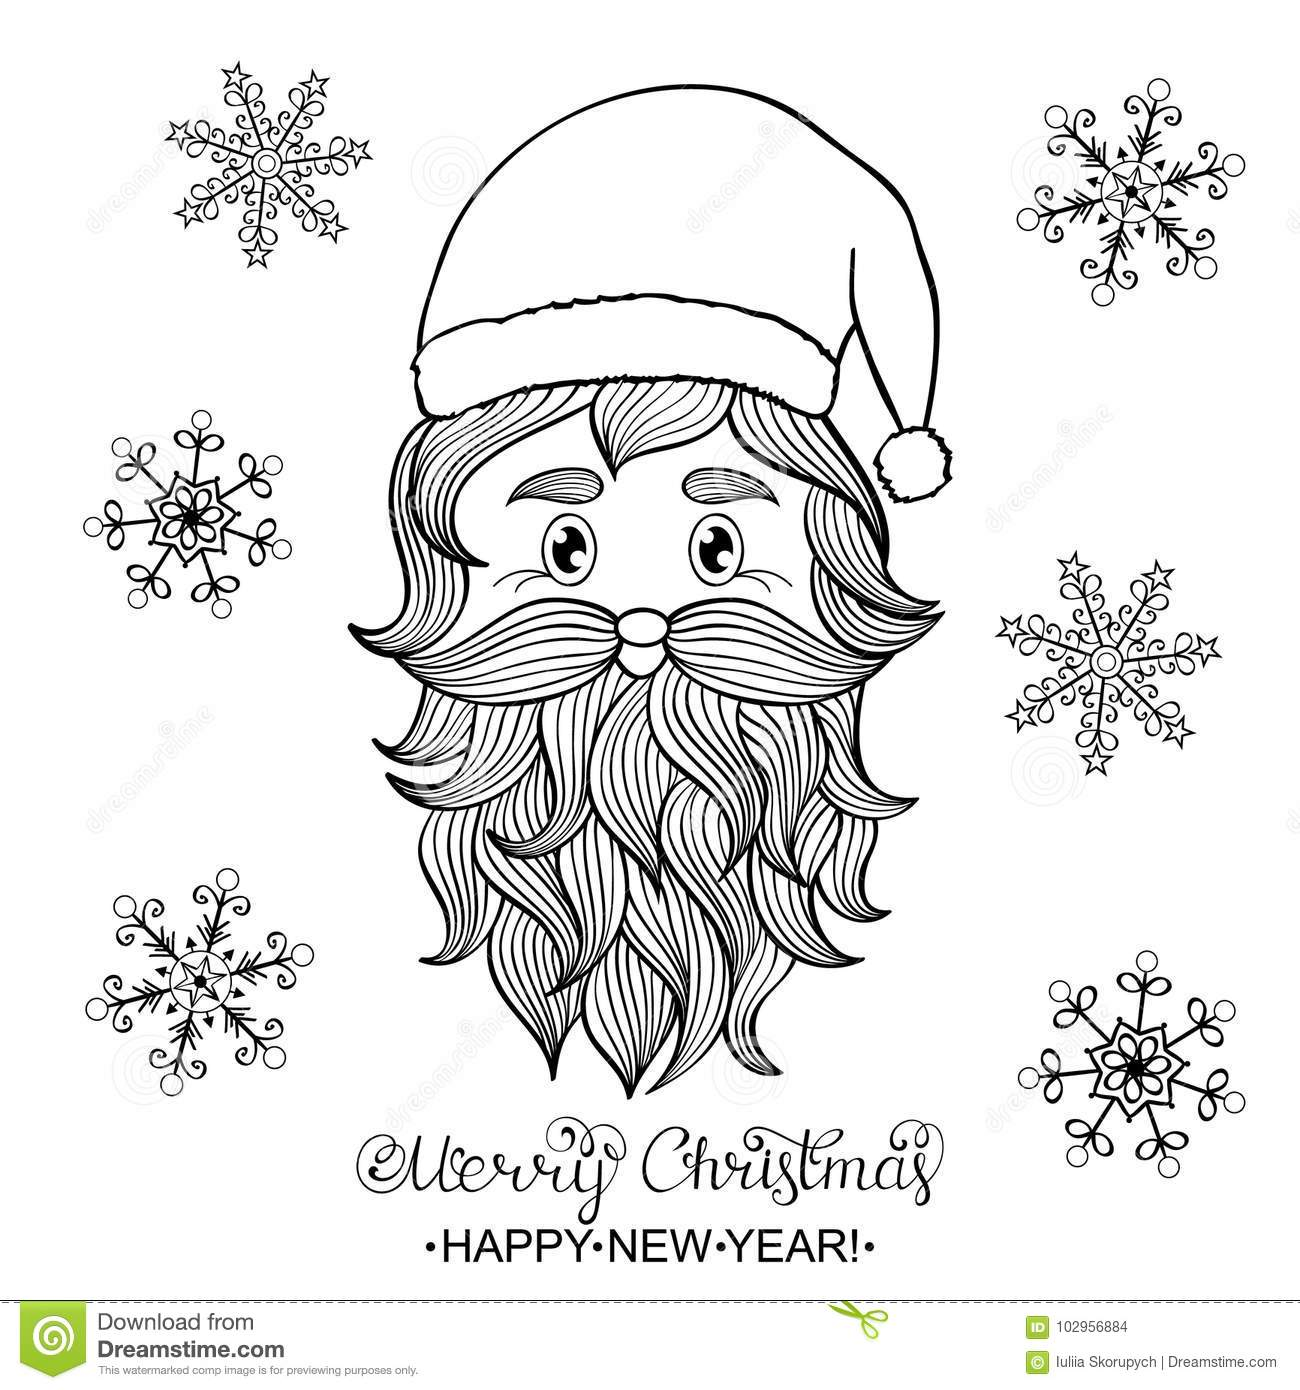 Santa Head Coloring Page With Hand Drawn Of Stock Vector Illustration Black 102956884